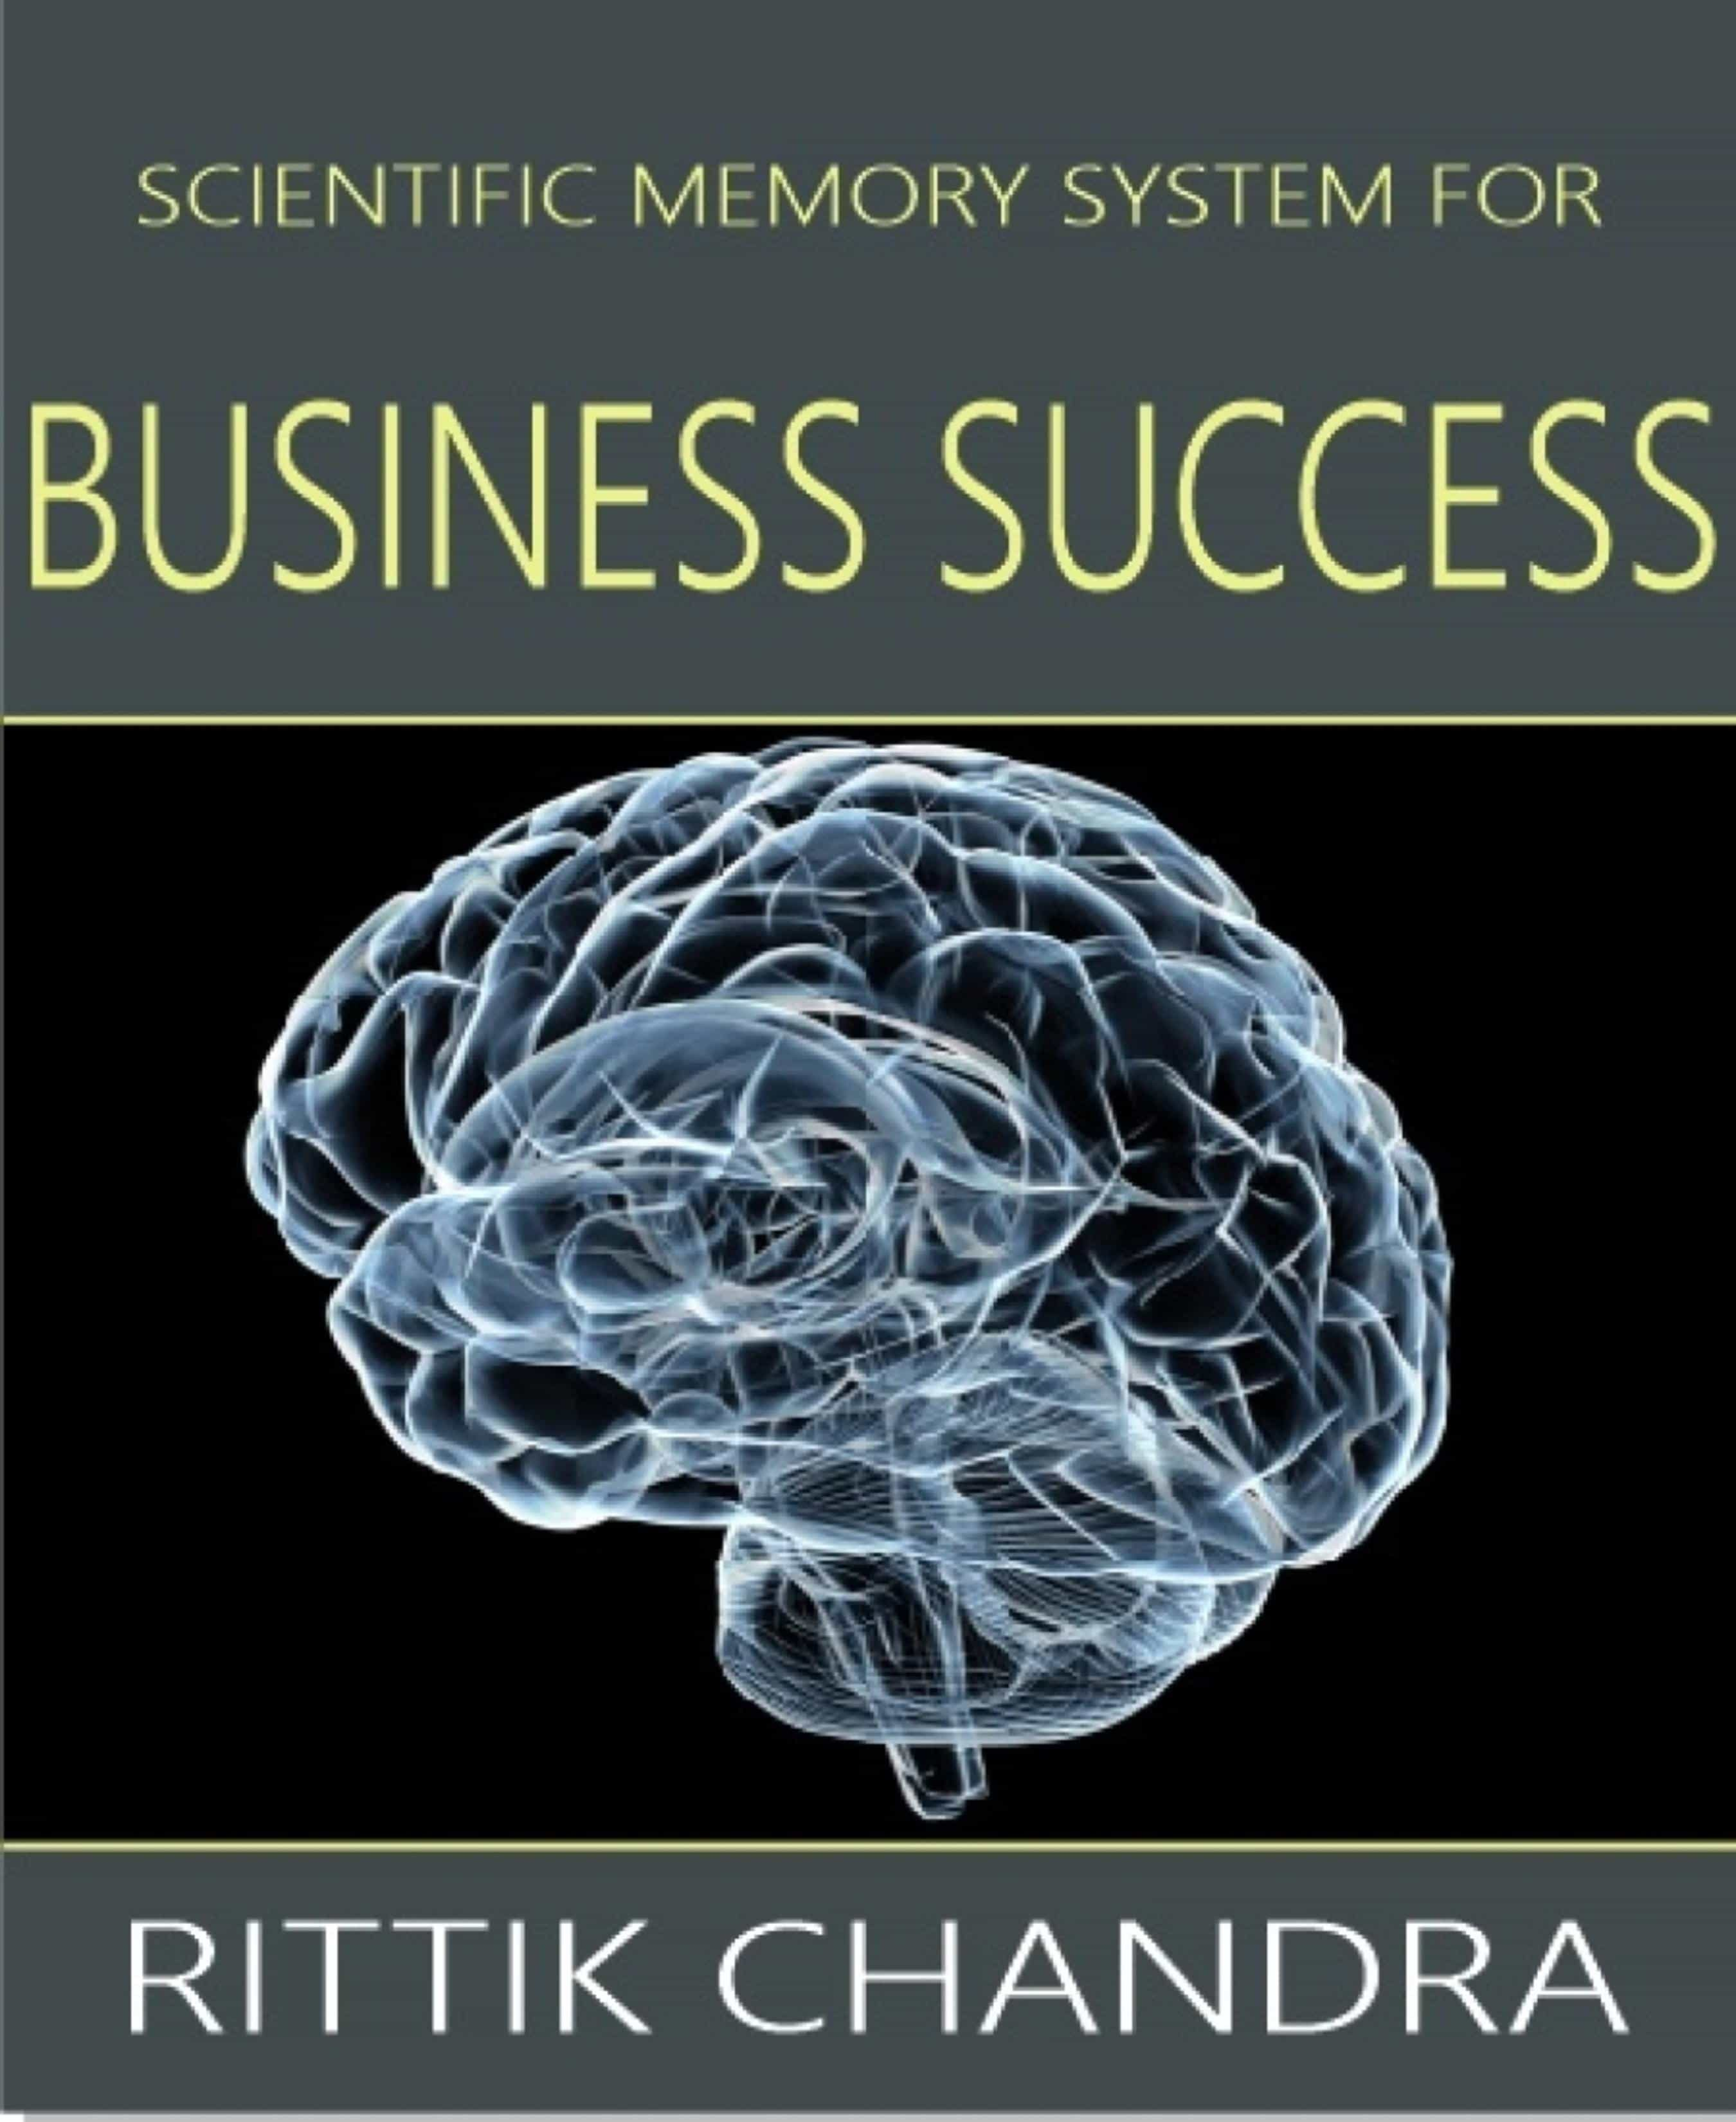 SCIENTIFIC MEMORY SYSTEM FOR BUSINESS SUCCESS